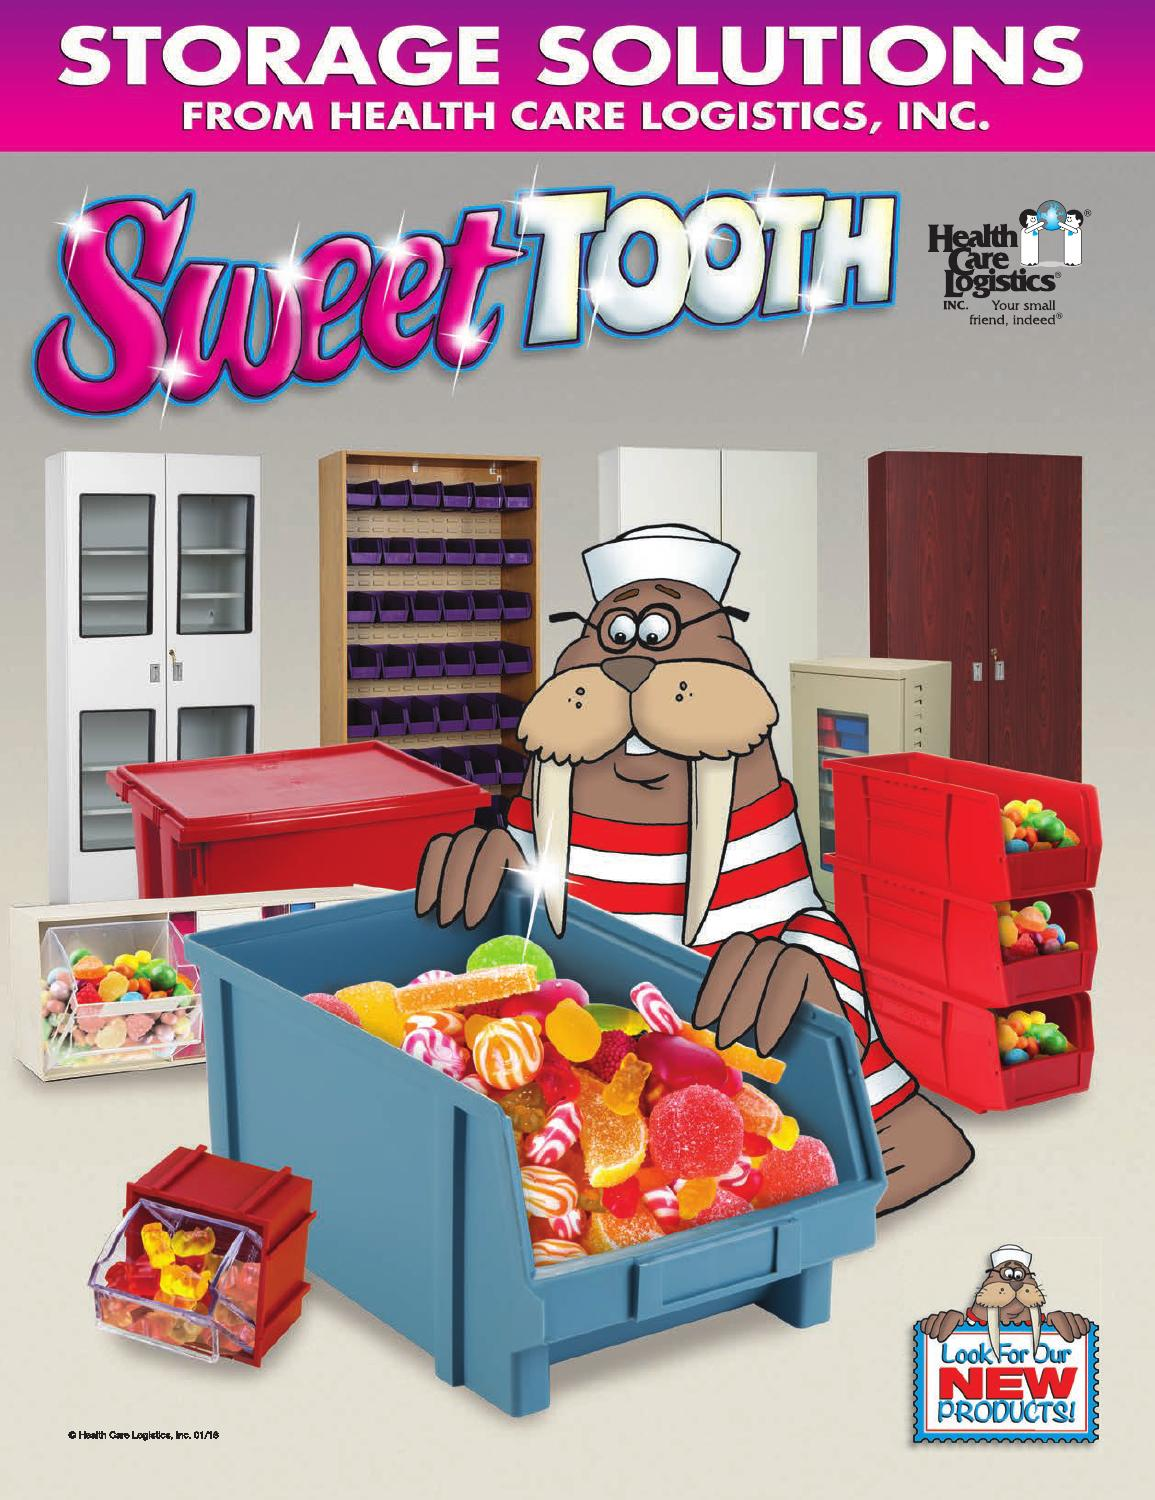 Sweet Tooth Storage Solutions By Health Care Logistics Issuu